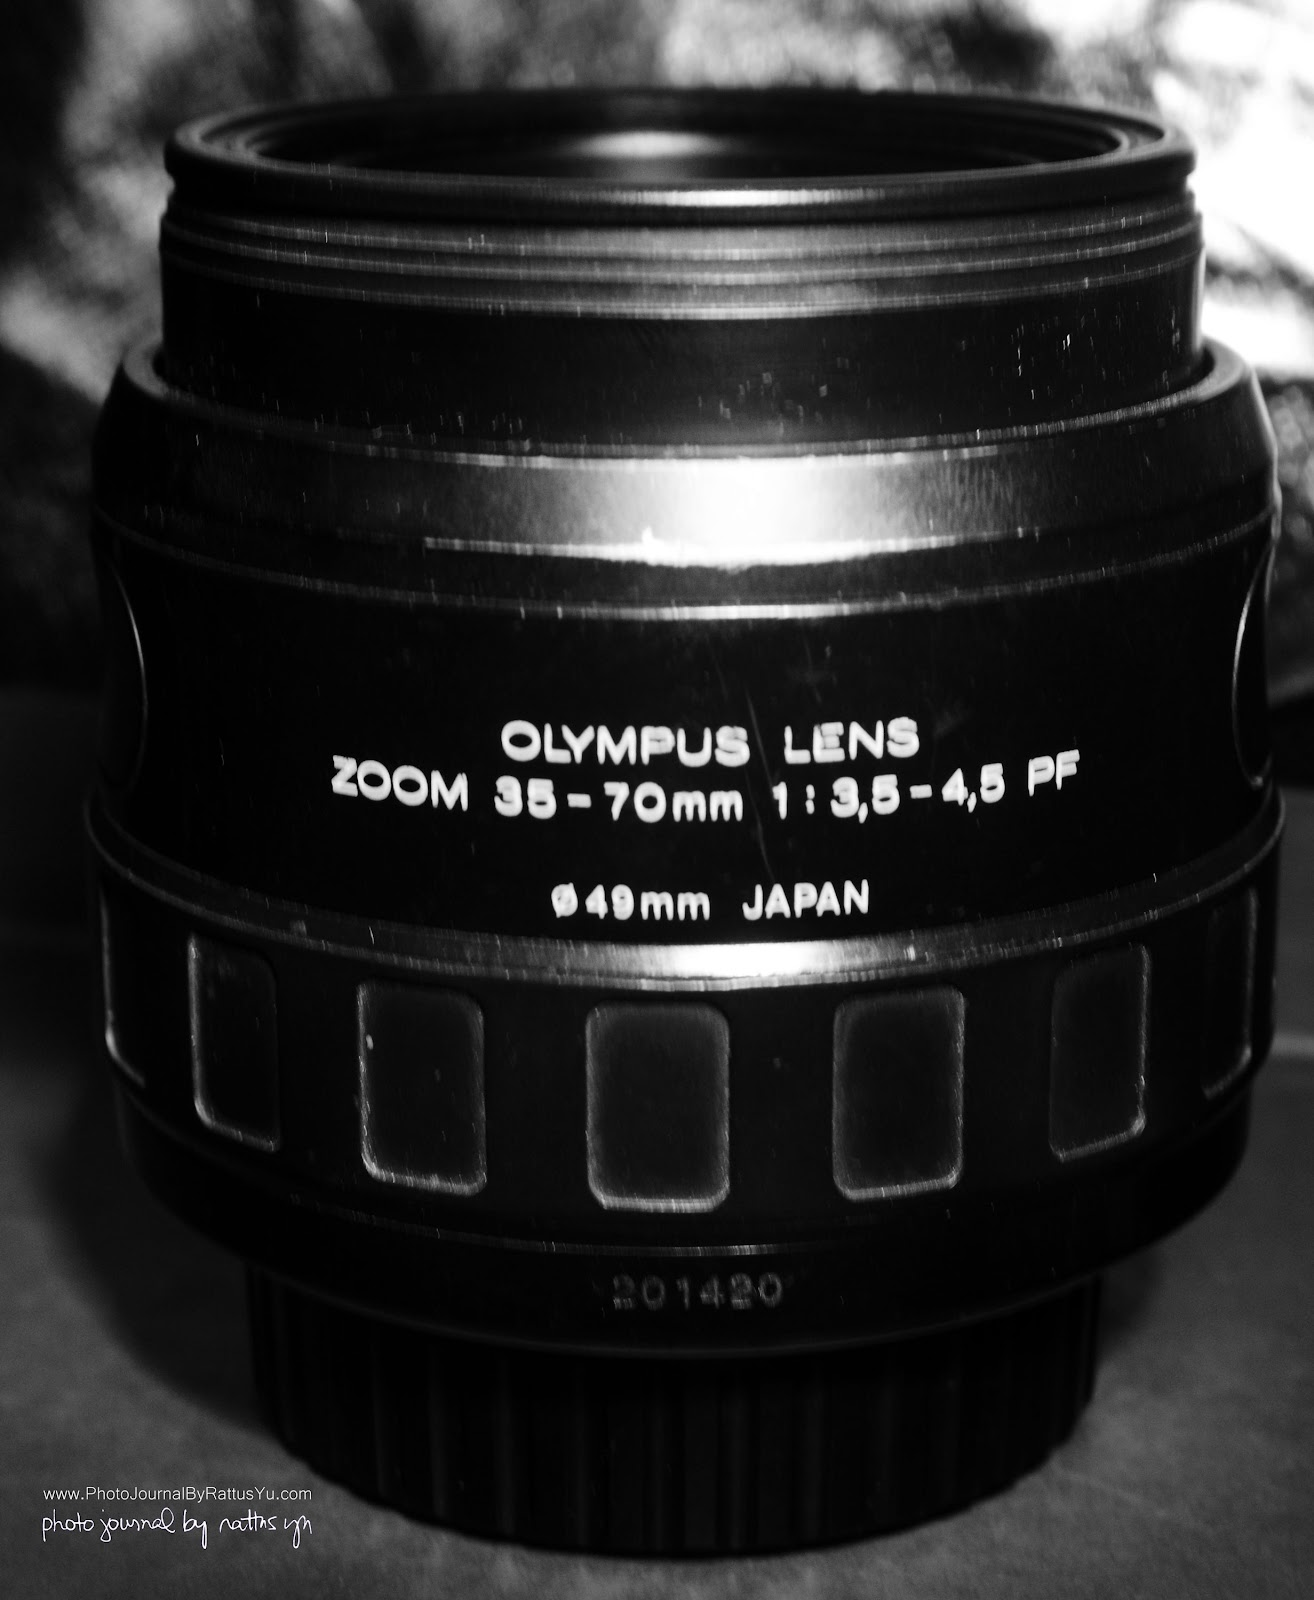 Olympus Lens 35-70mm f/3.5-4.5 PF Close Focus